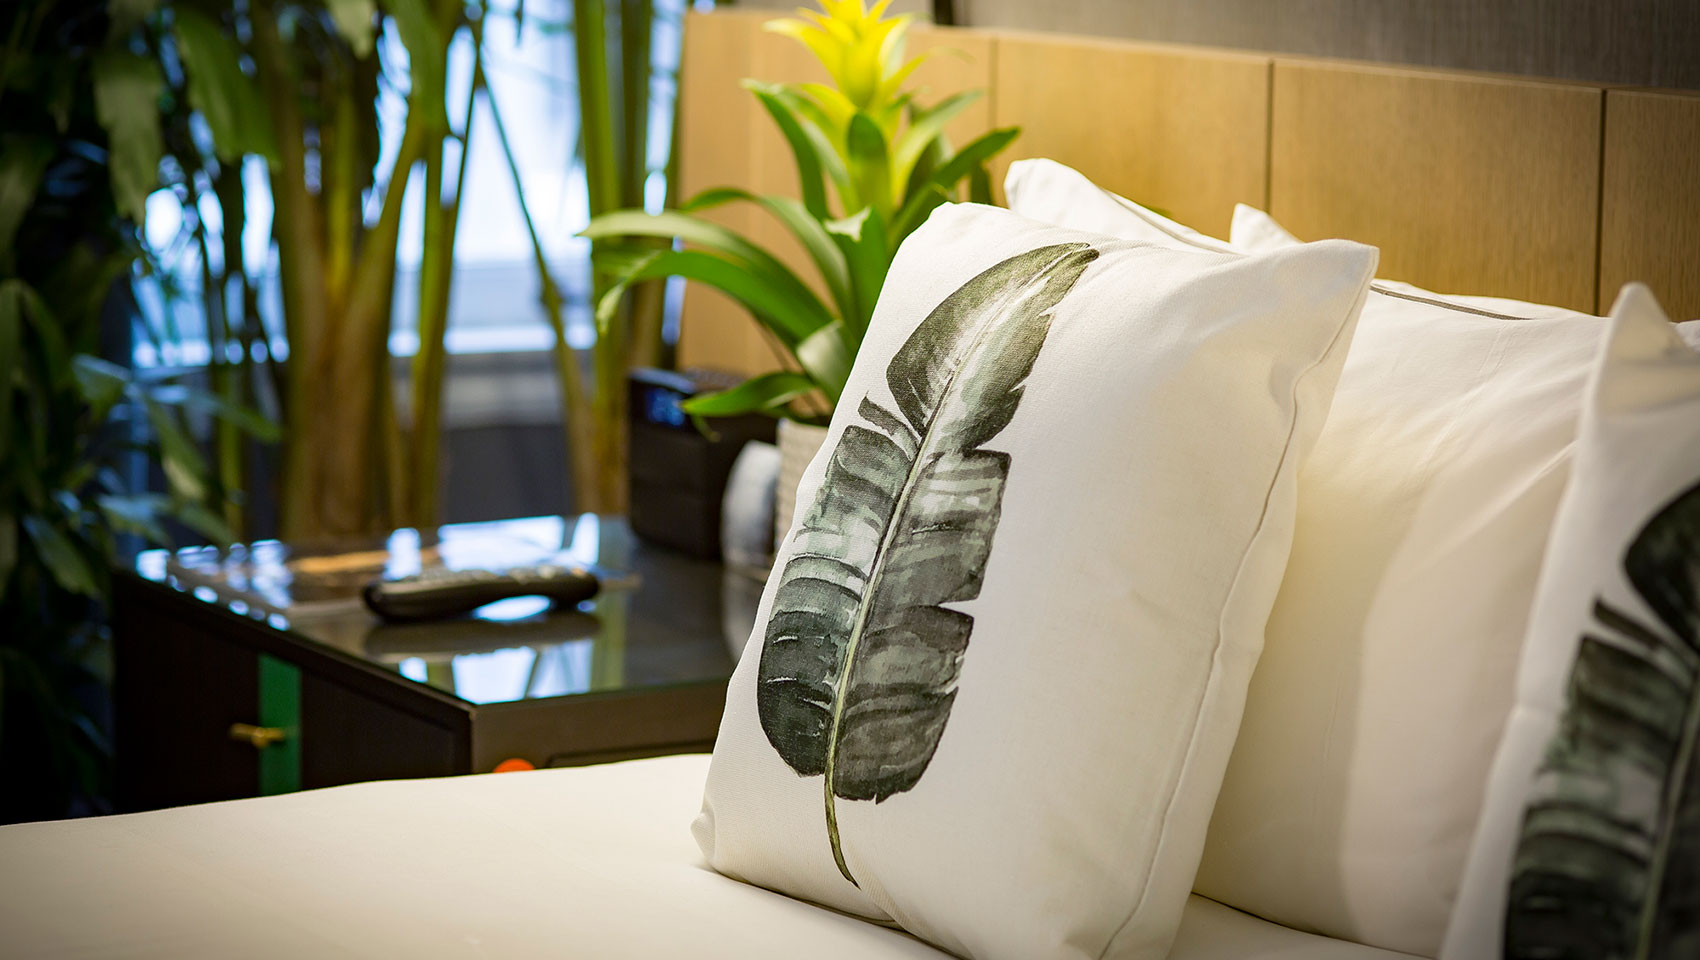 throw pillow on bed with picture of palm leaf